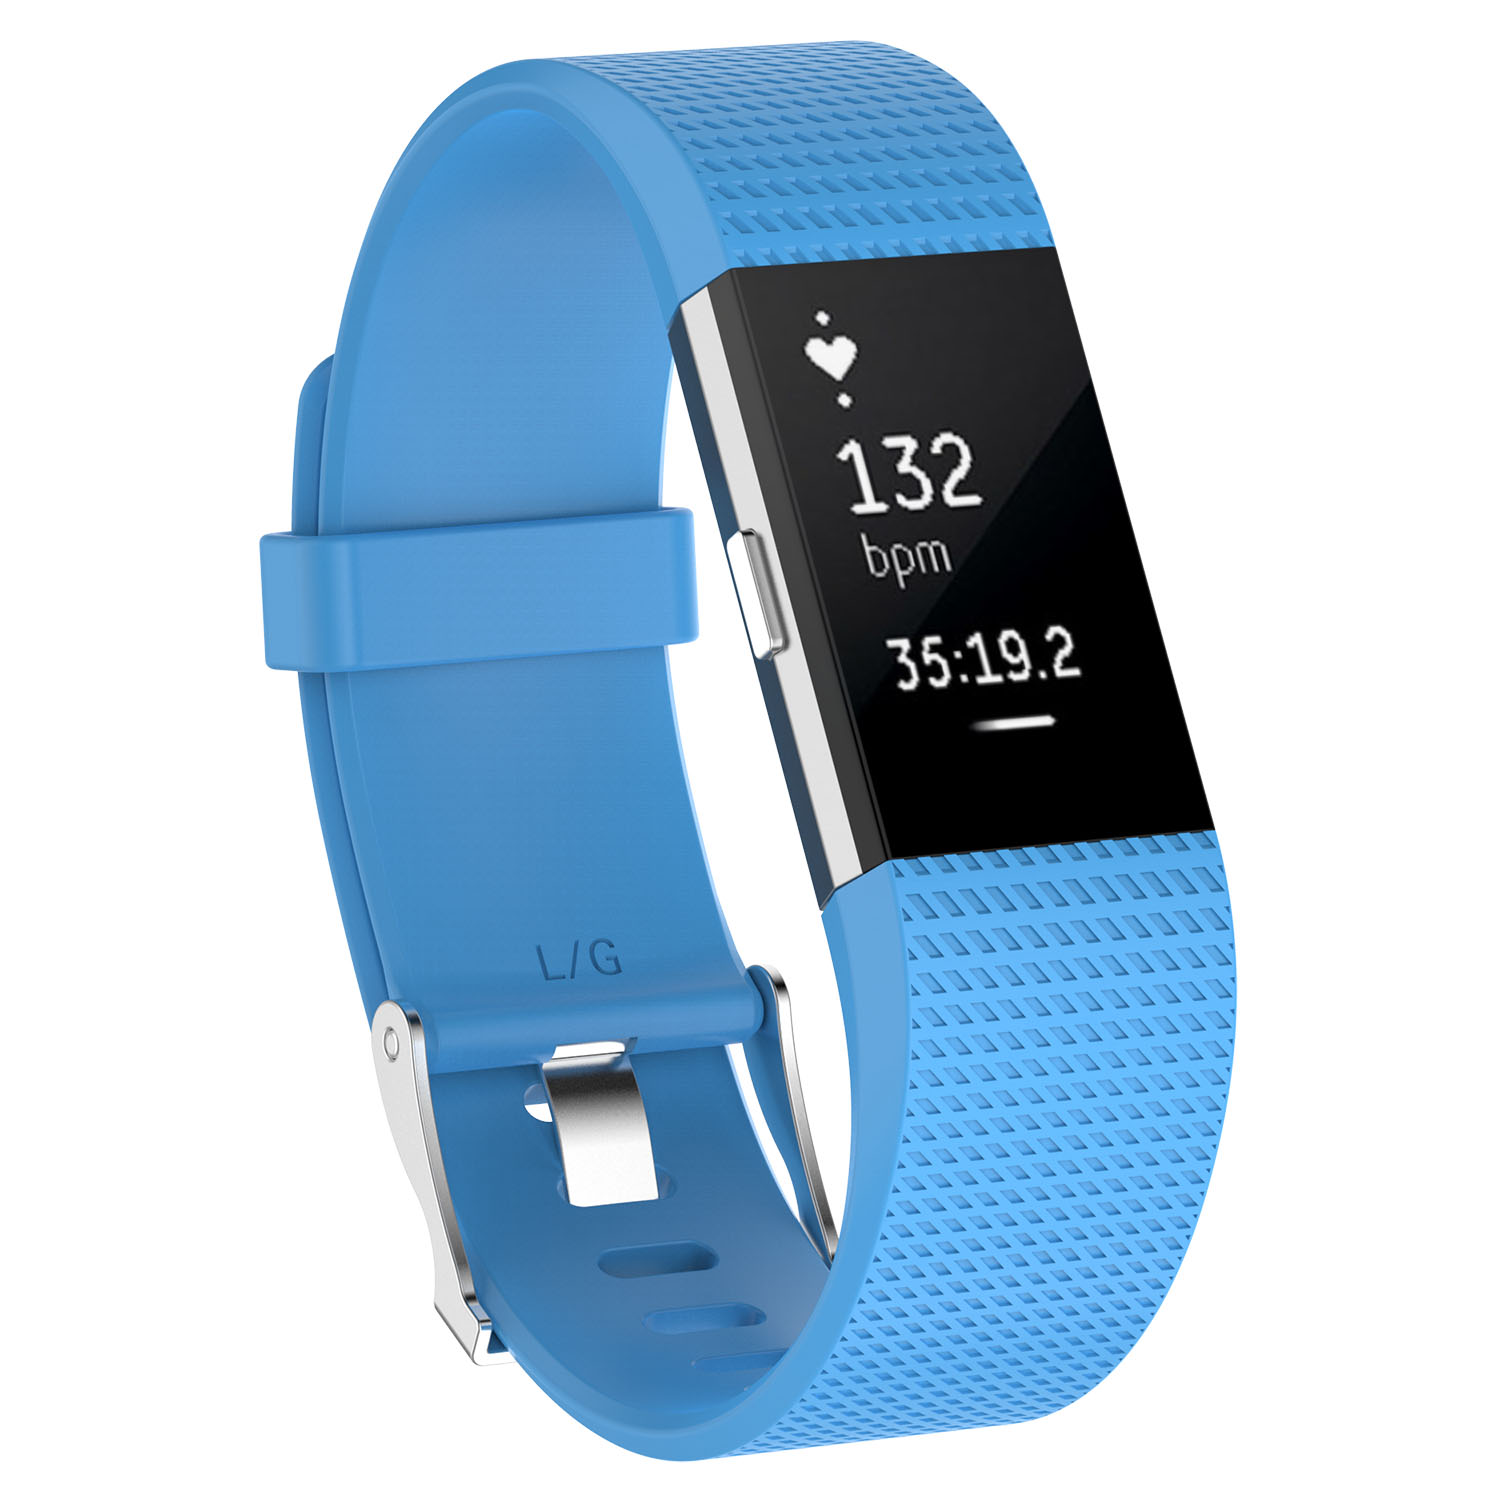 Replacement-Silicone-Wristband-Watch-Strap-Bands-Bracelet-For-Fitbit-Charge-2 thumbnail 72